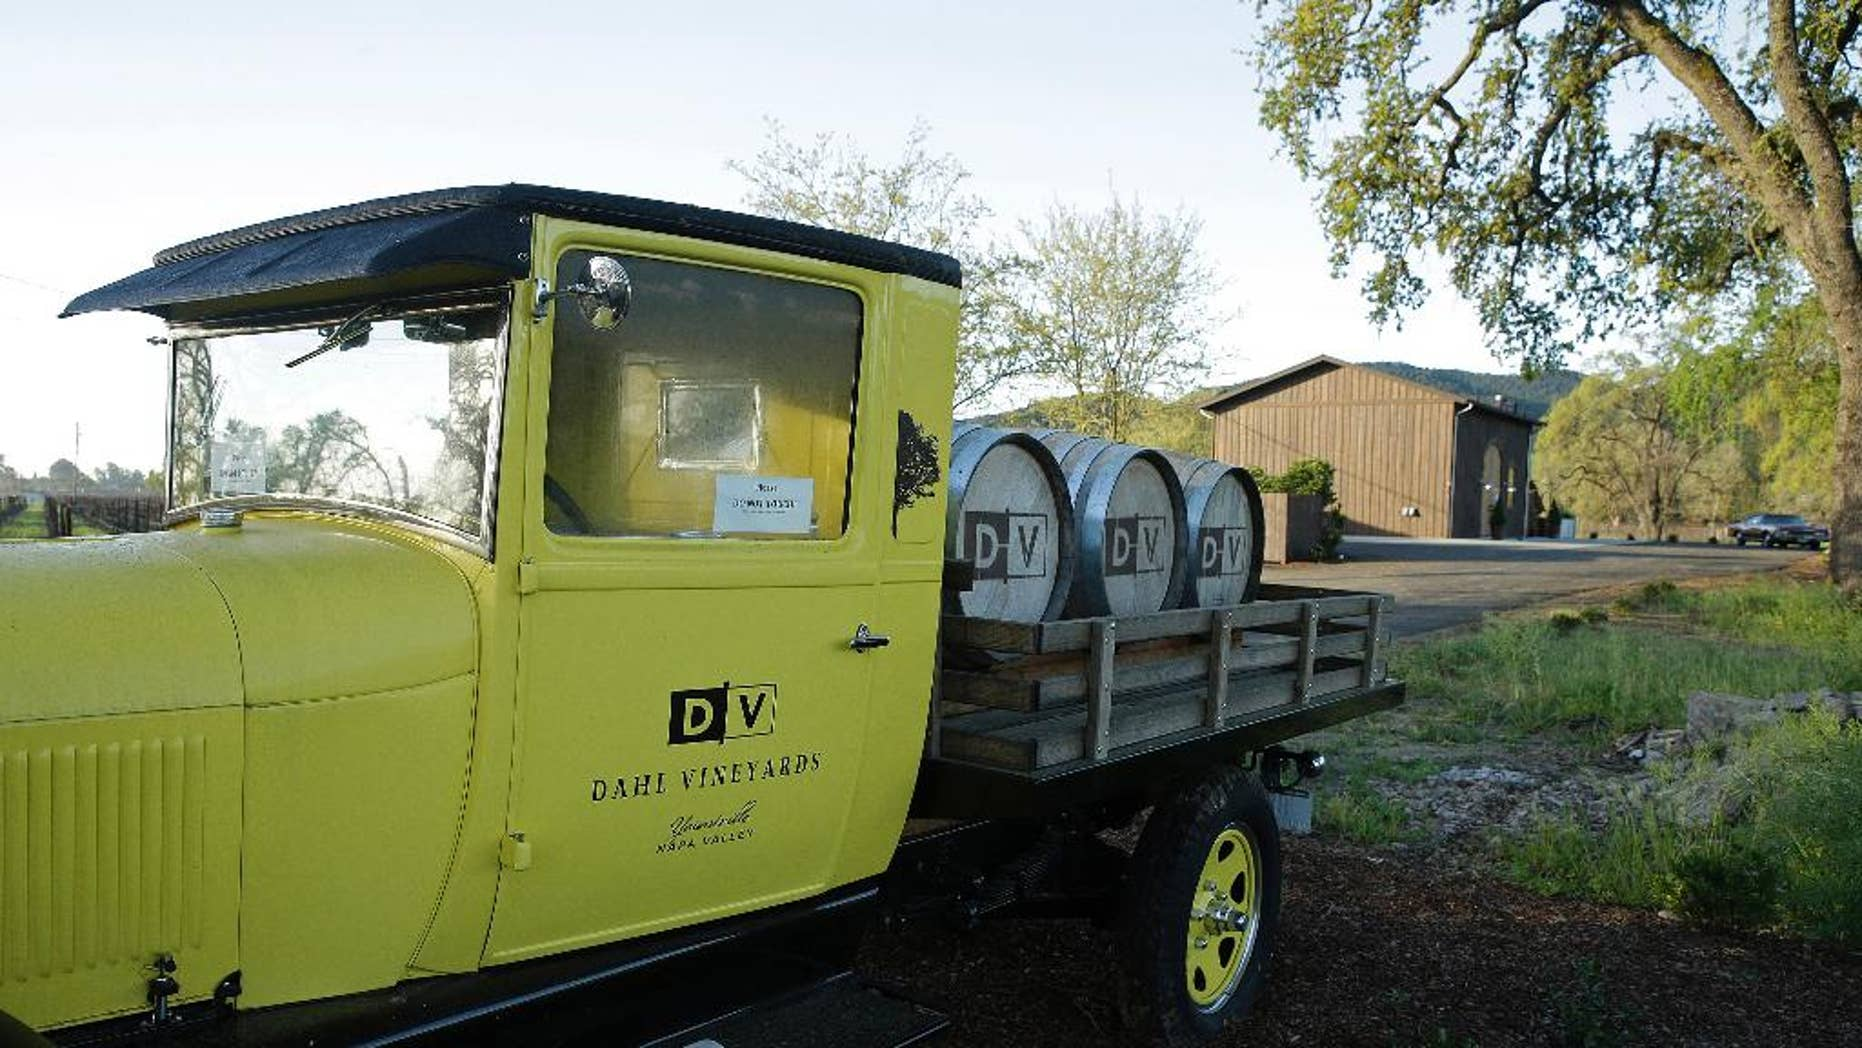 FILE - In this March 18, 2015 file photo, a 1926 Model T Ford truck is parked at the entrance to Dahl Vineyards in Yountville, Calif. A police dispatcher told police that a man later identified as a Silicon Valley investor had been shot and wounded while an assailant chased him through a California vineyard, according to the 911 recordings released Tuesday, March 24, 2015. The tapes show police arrived at Dahl Vineyards shortly before noon, four minutes after the initial 911 call and just moments before authorities say vintner Robert Dahl shot Emad Tawfilis in the head at close range. Tawfilis died at the scene. Dahl then led police on a brief, high-speed chase through Napa Valley wine country before stopping and committing suicide with a shot to the head. (AP Photo/Eric Risberg, File)